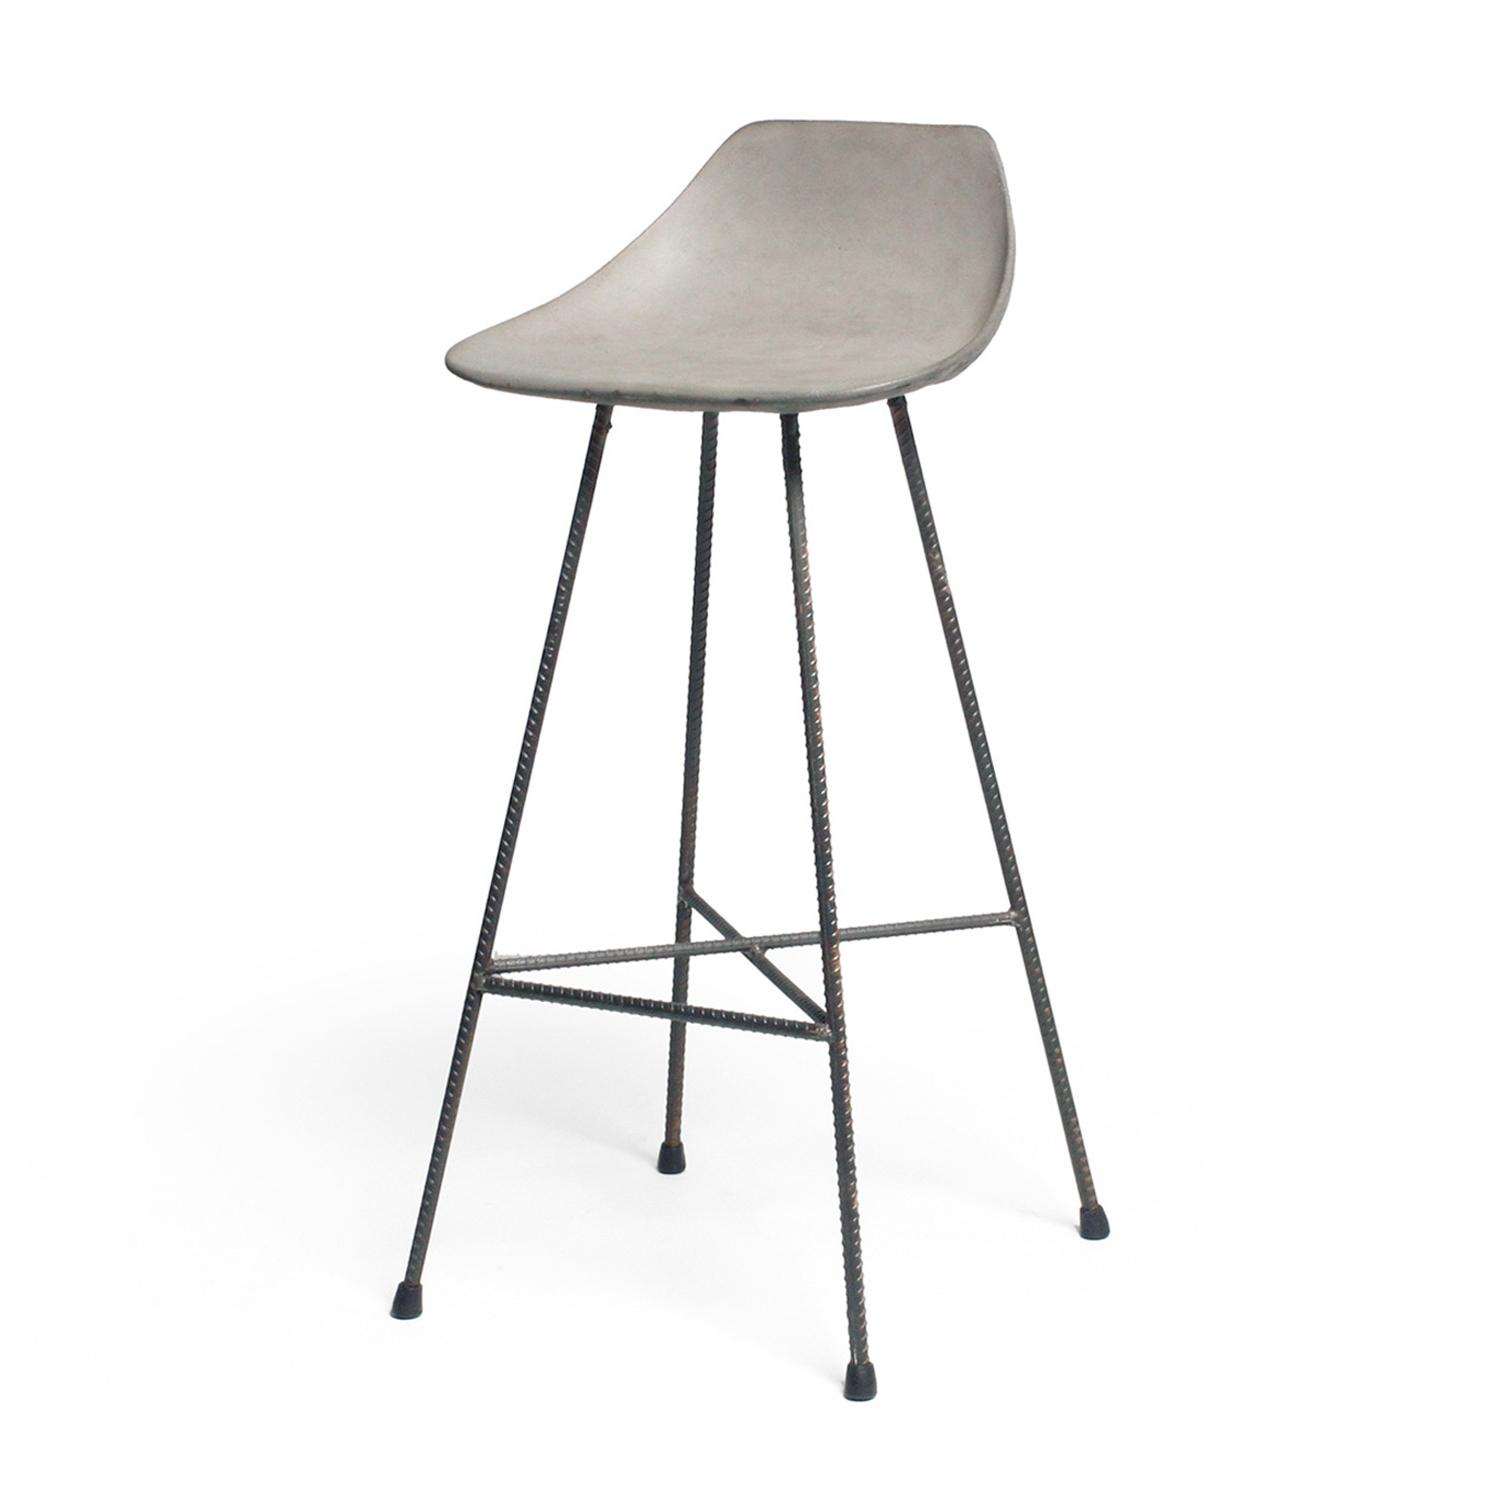 Concrete Rebar Chairs Hauteville Bar Chair